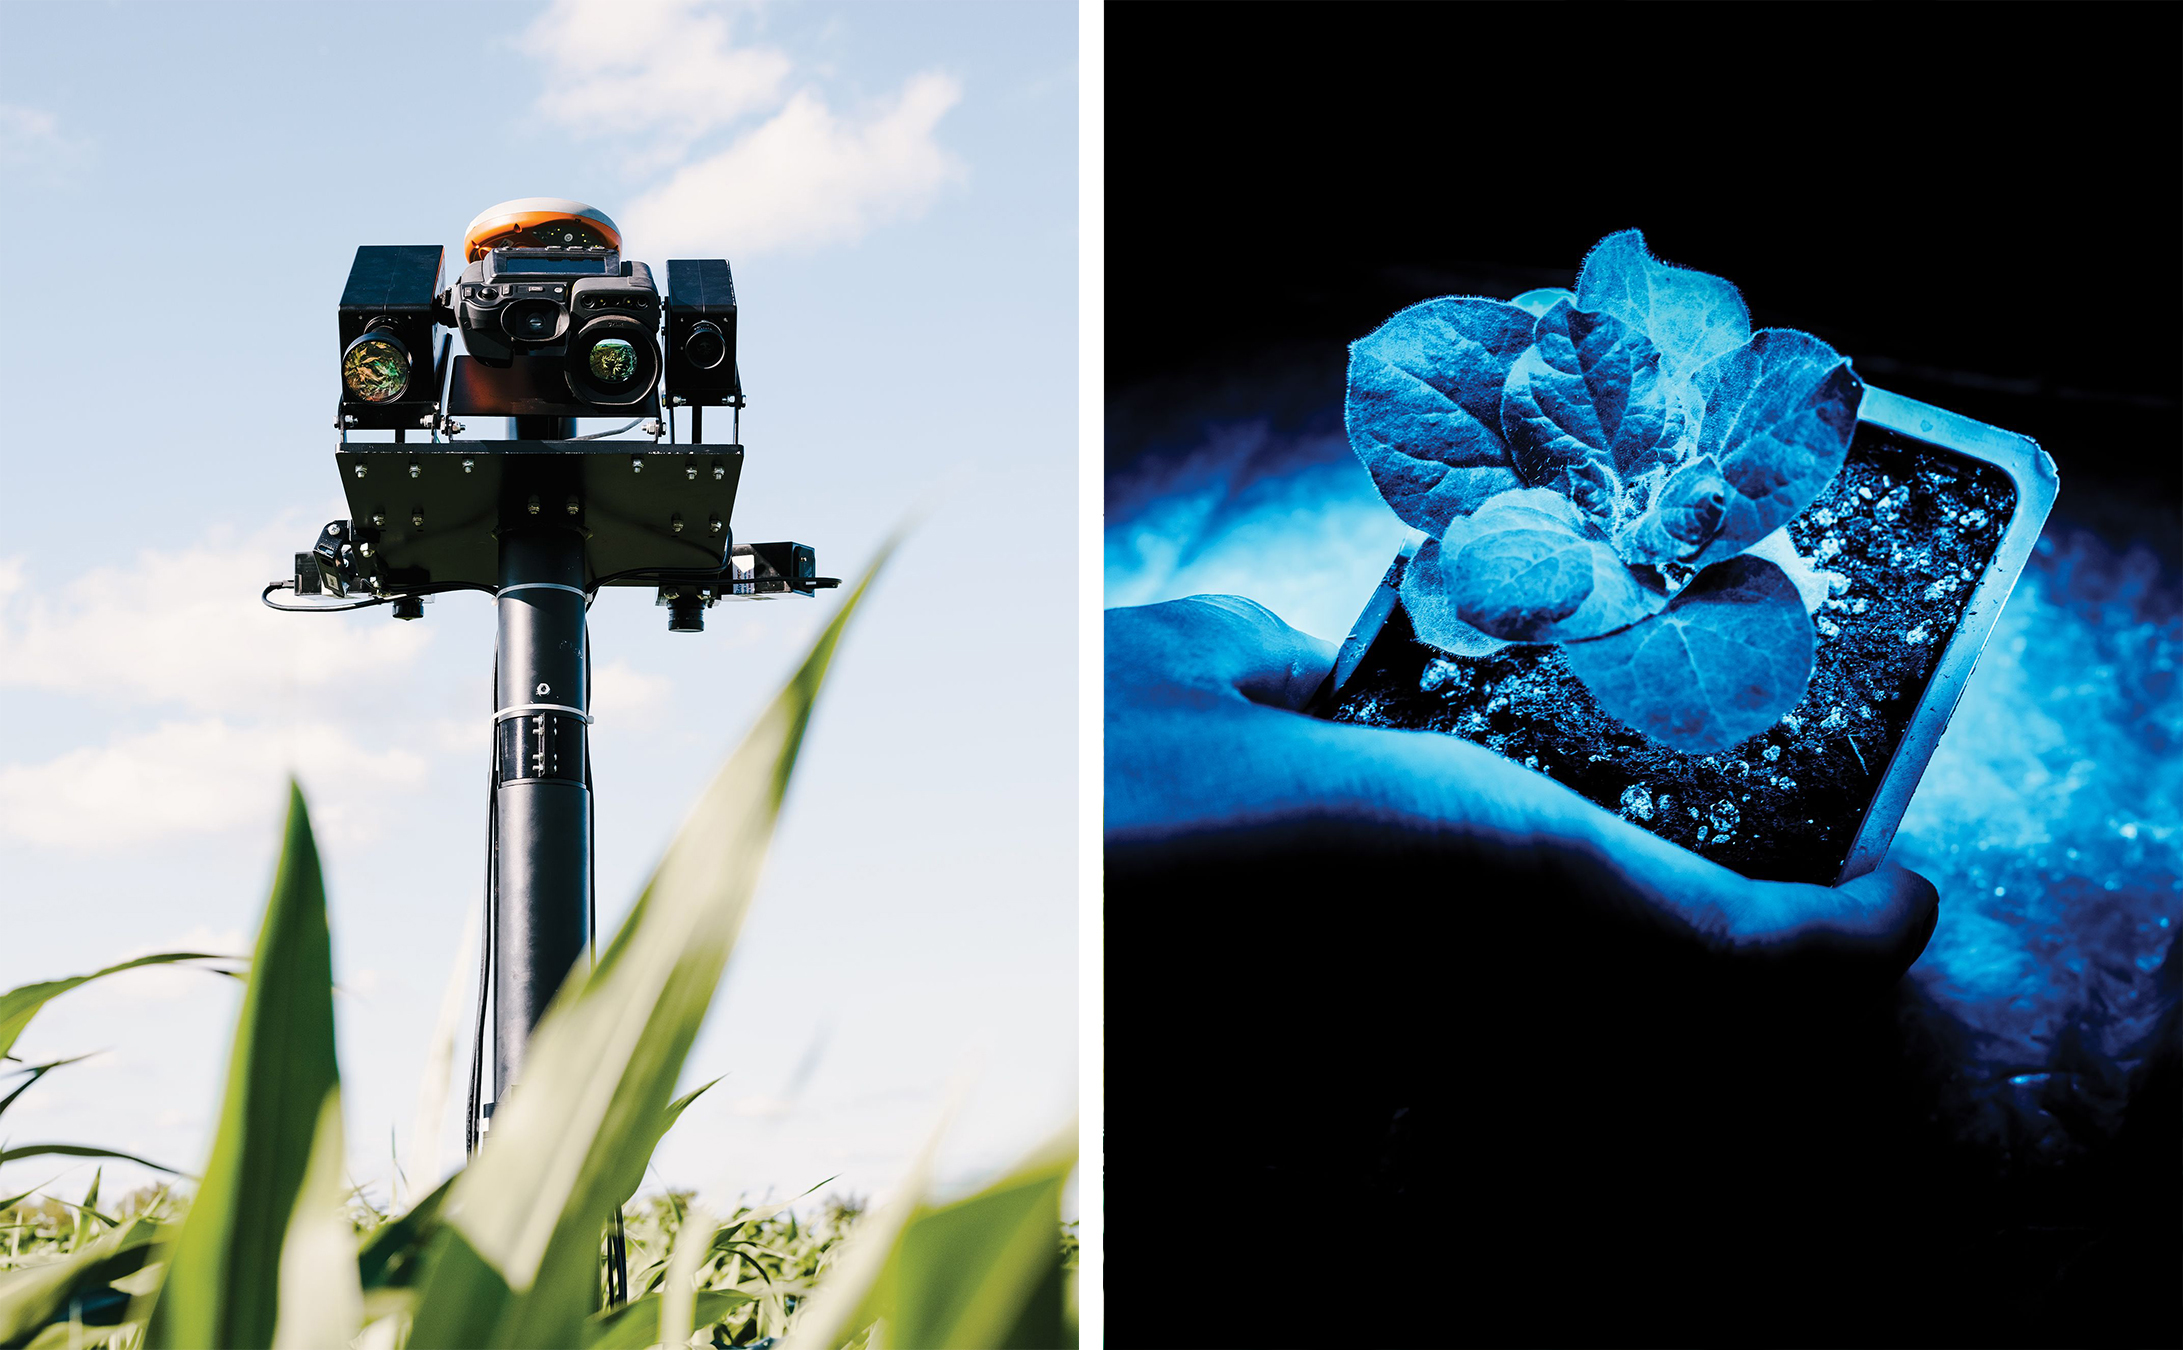 """<b><a href=""""https://www.technologyreview.com/s/608535/to-feed-the-world-improve-photosynthesis/ """" target=""""_blank"""">To Feed the World, Improve Photosynthesis </a></b> <br> Photographs by Whitten Sabbatini"""